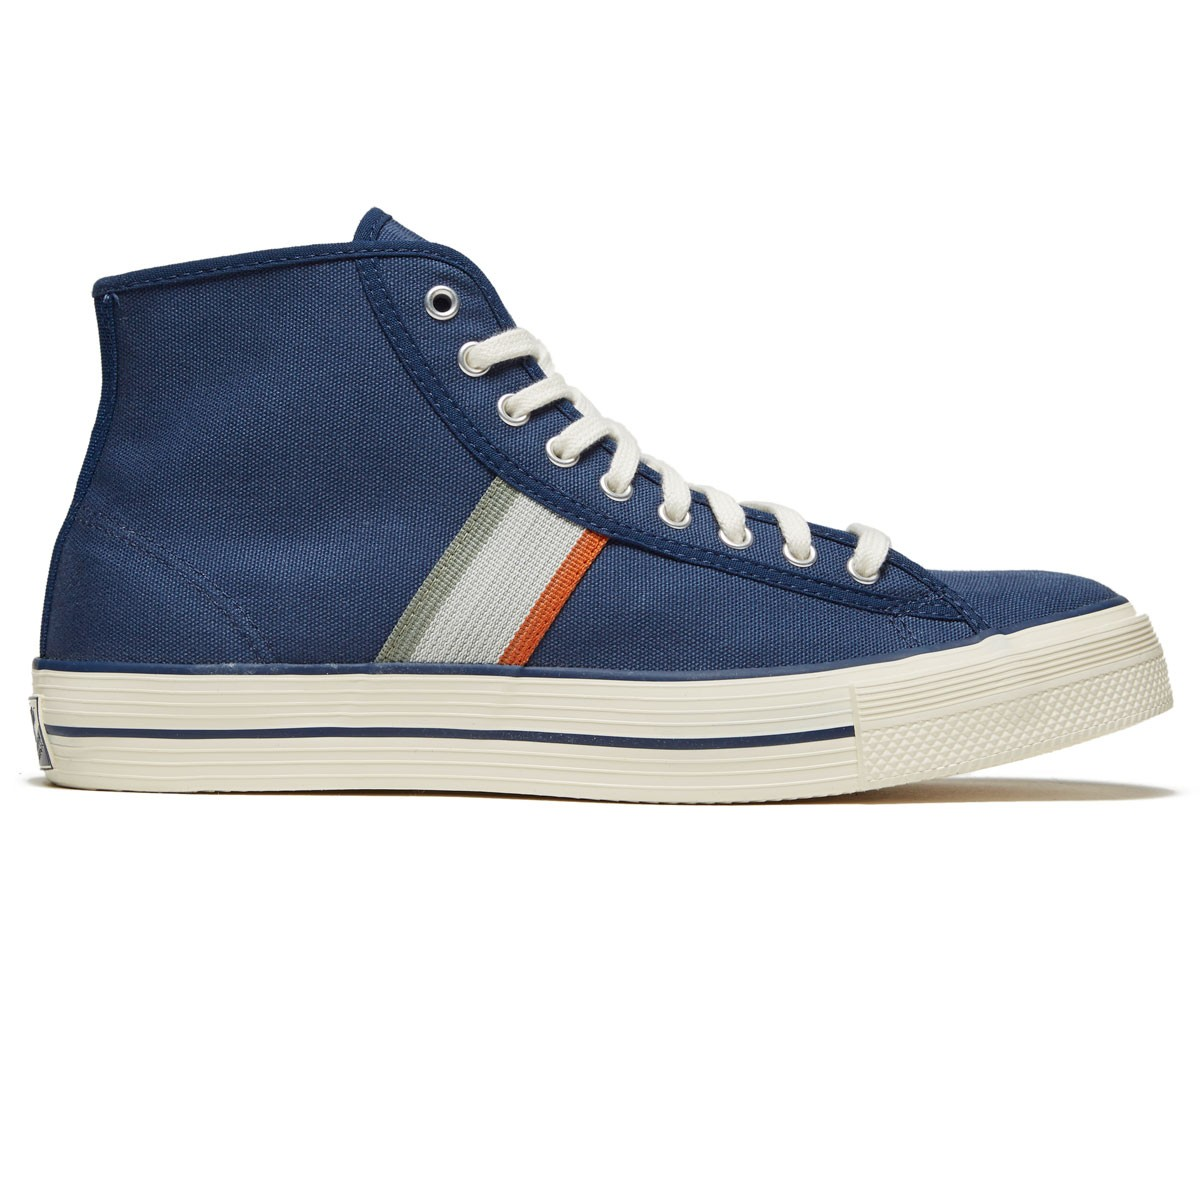 Converse Player LT Hi Shoes